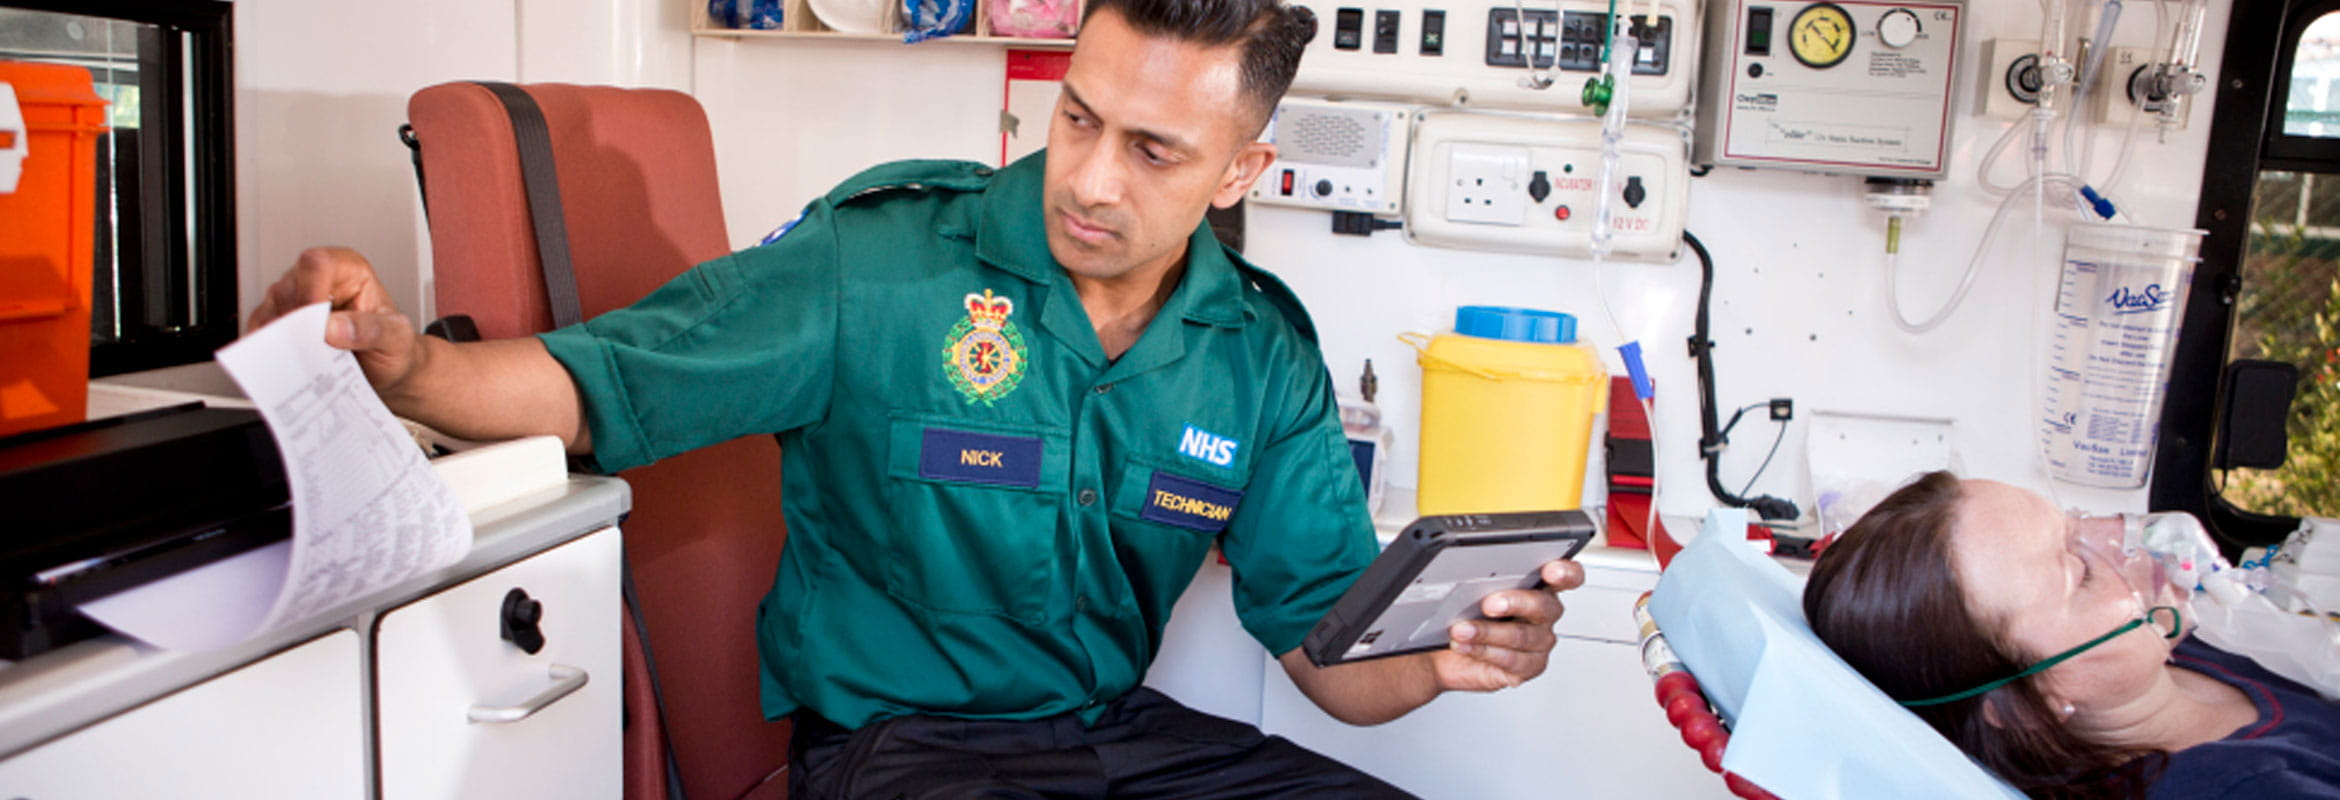 Emergency services professional reading results printout for patient